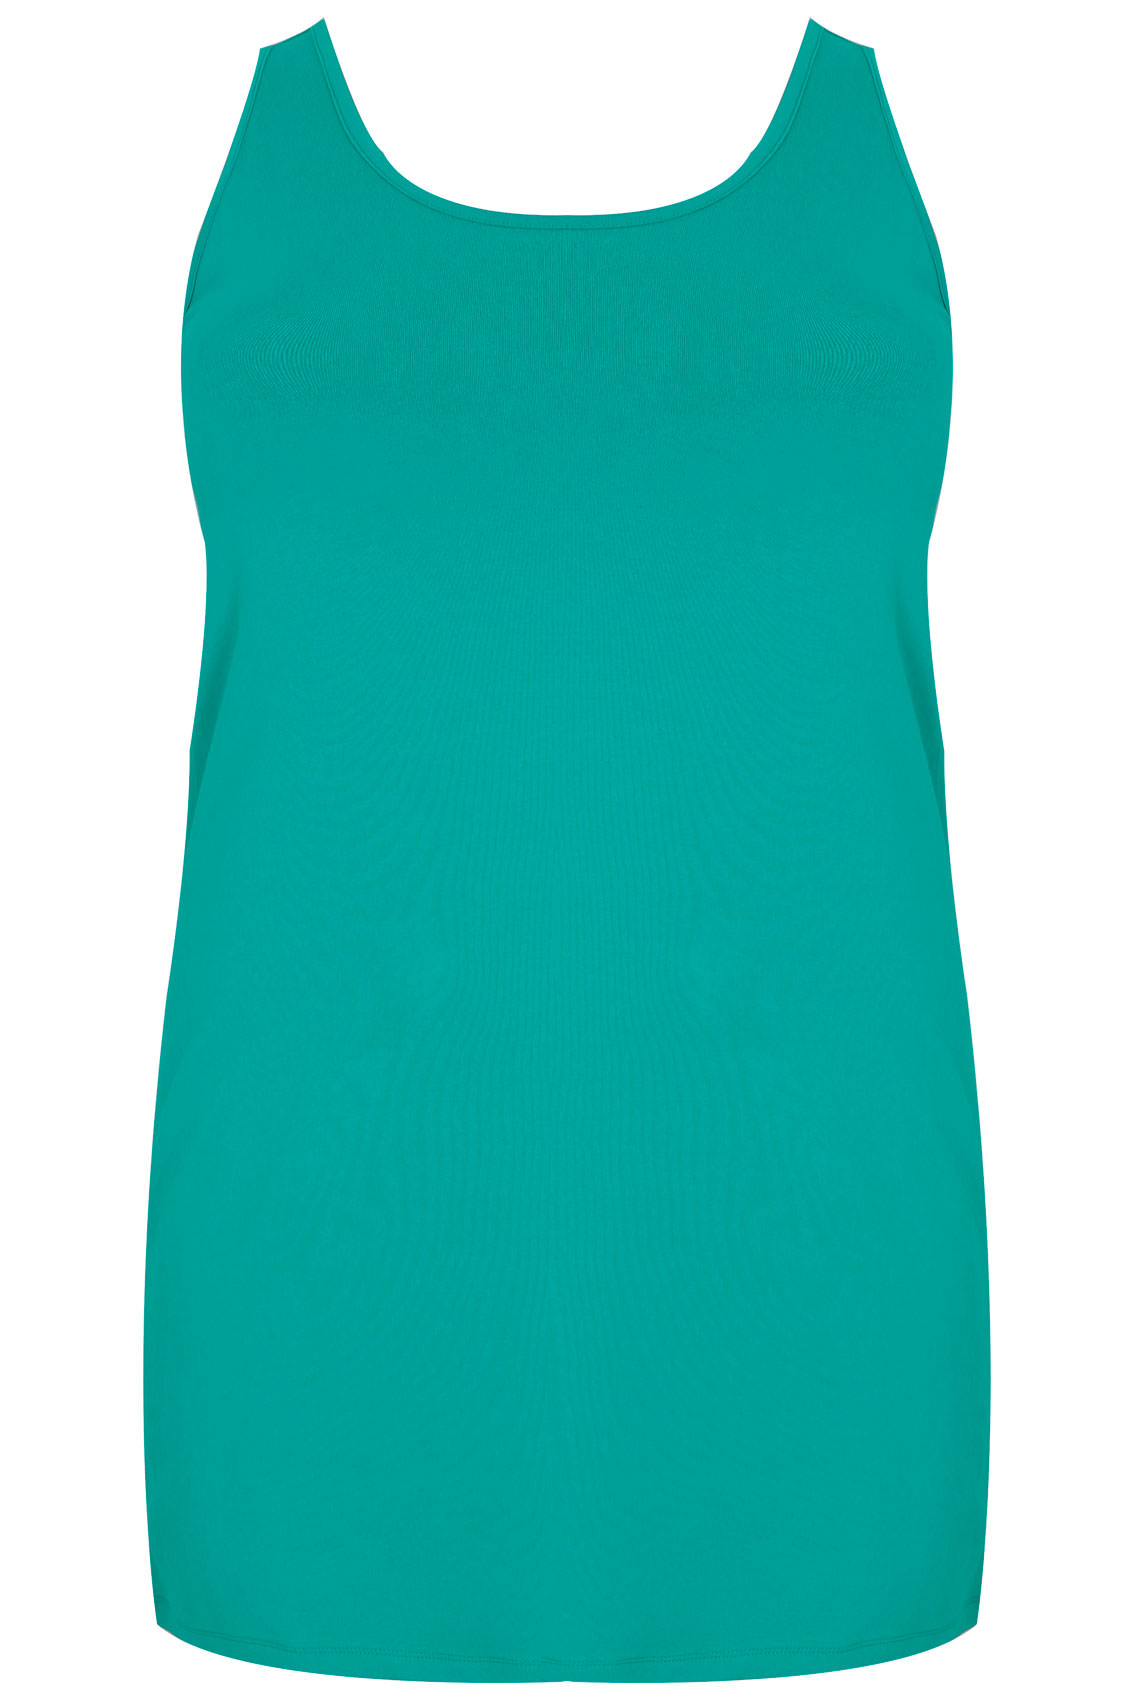 vest top template - jade green longline vest top plus size 16 to 36